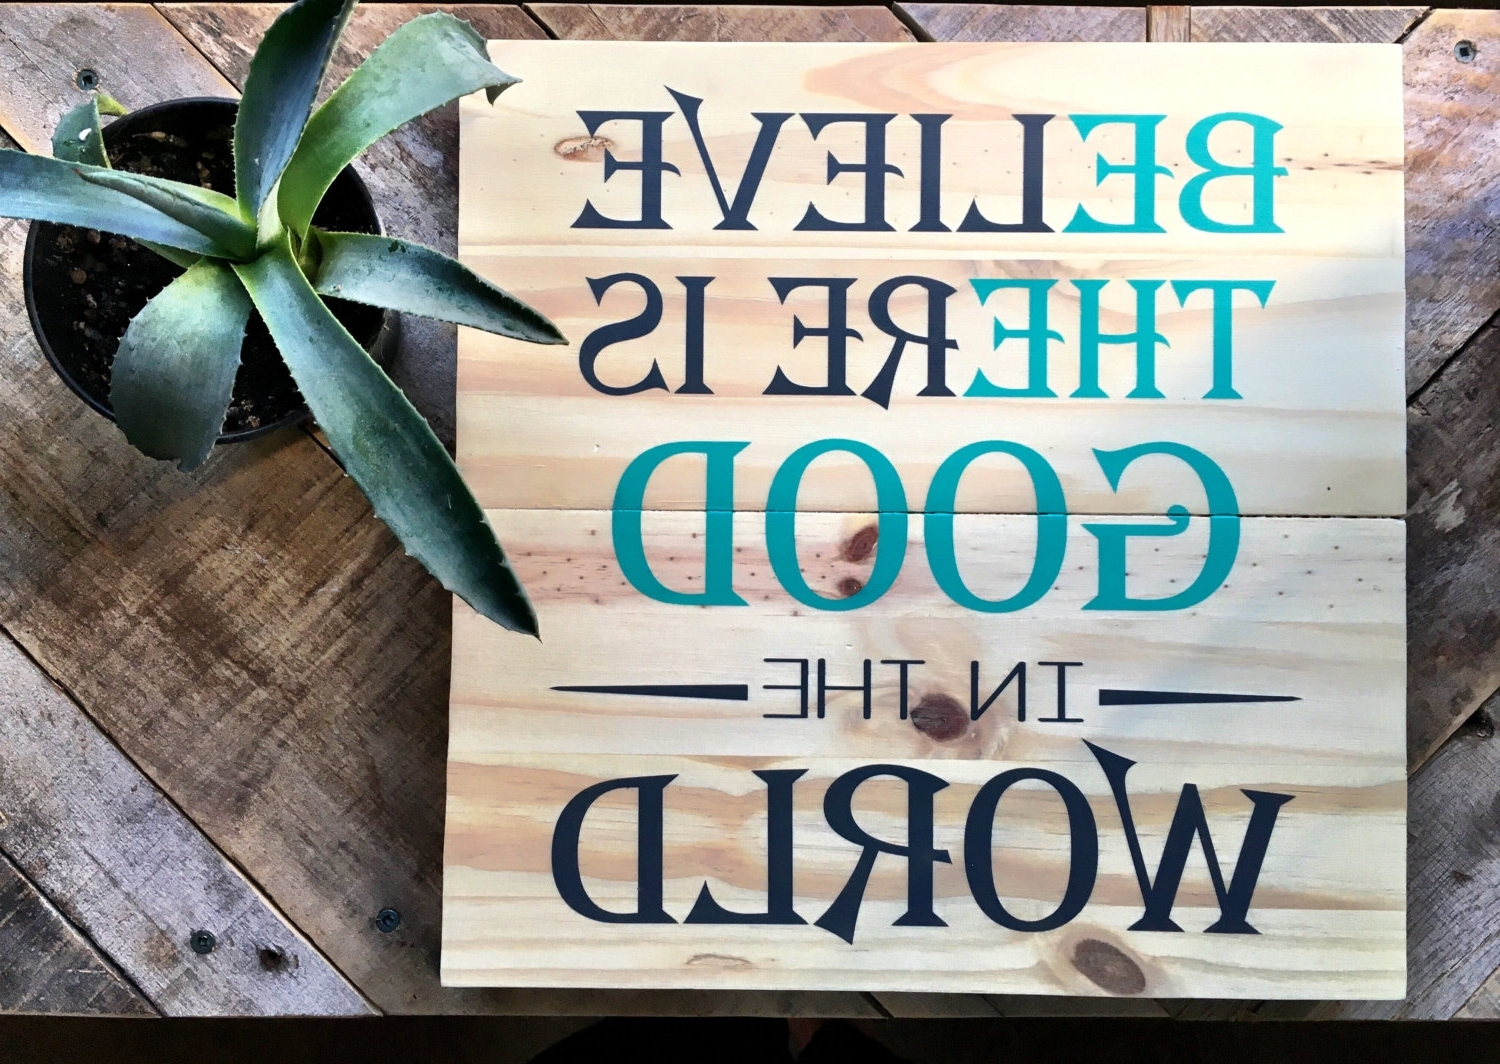 Current Wall Art Quotes On Wood – Amthuchanoi With Regard To Wood Wall Art Quotes (View 3 of 15)